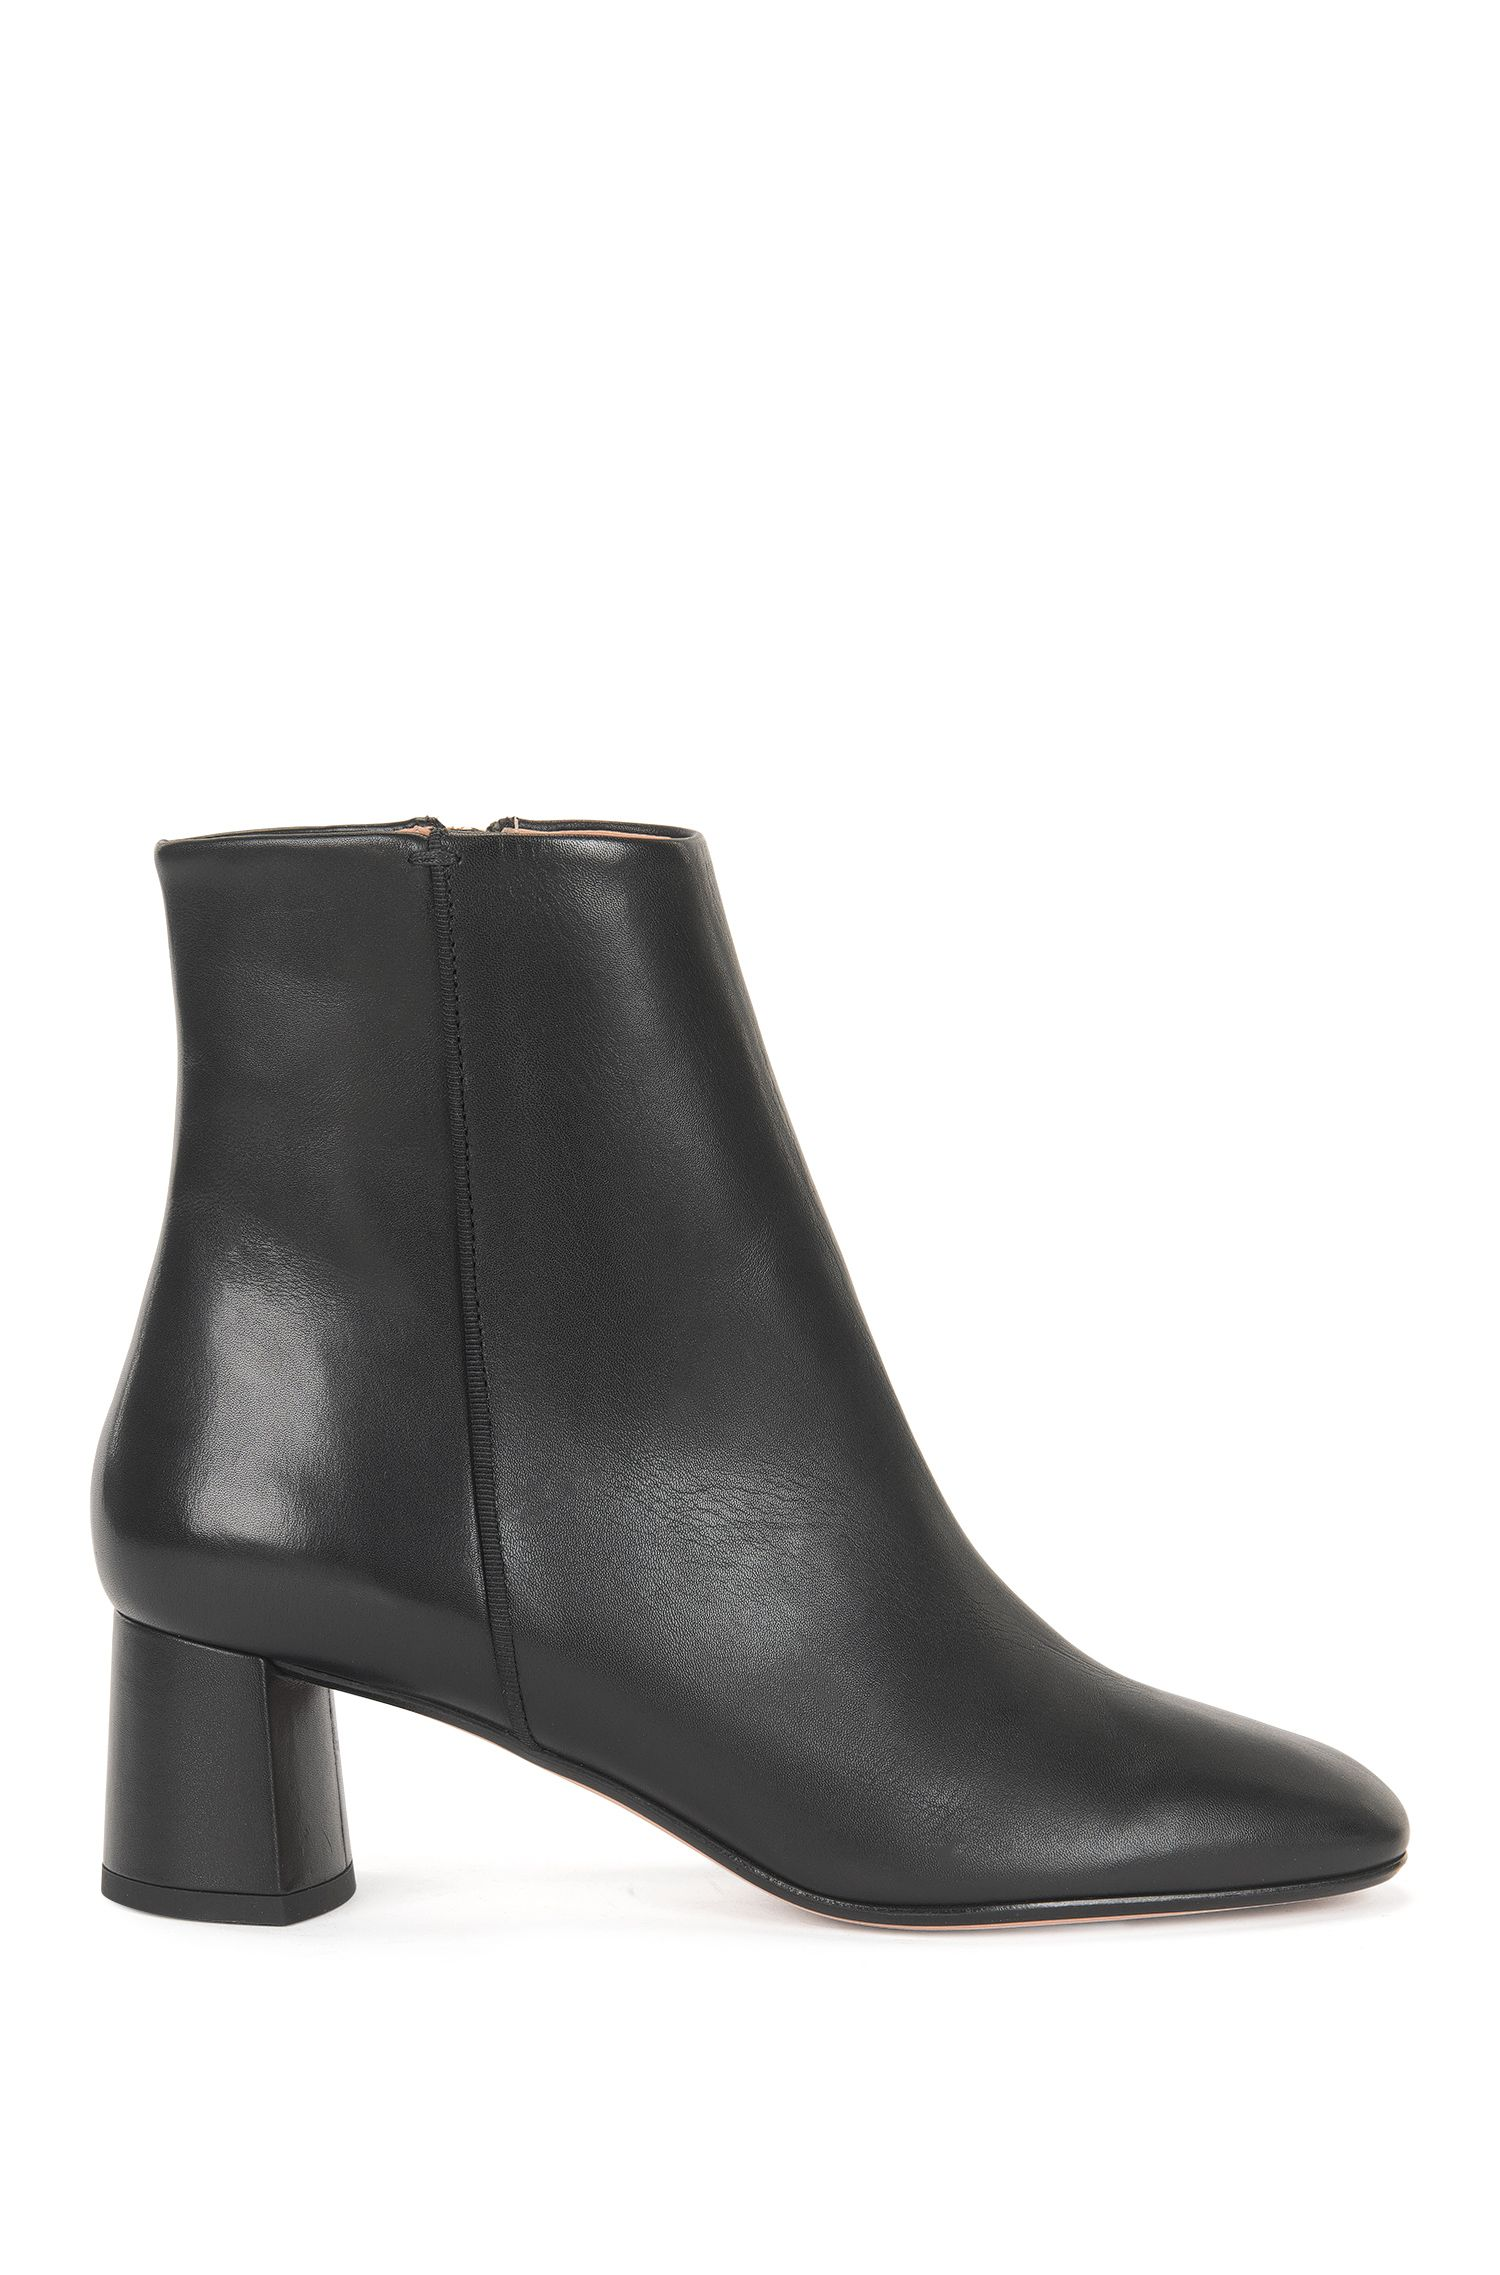 Leather ankle boots with chunky heel